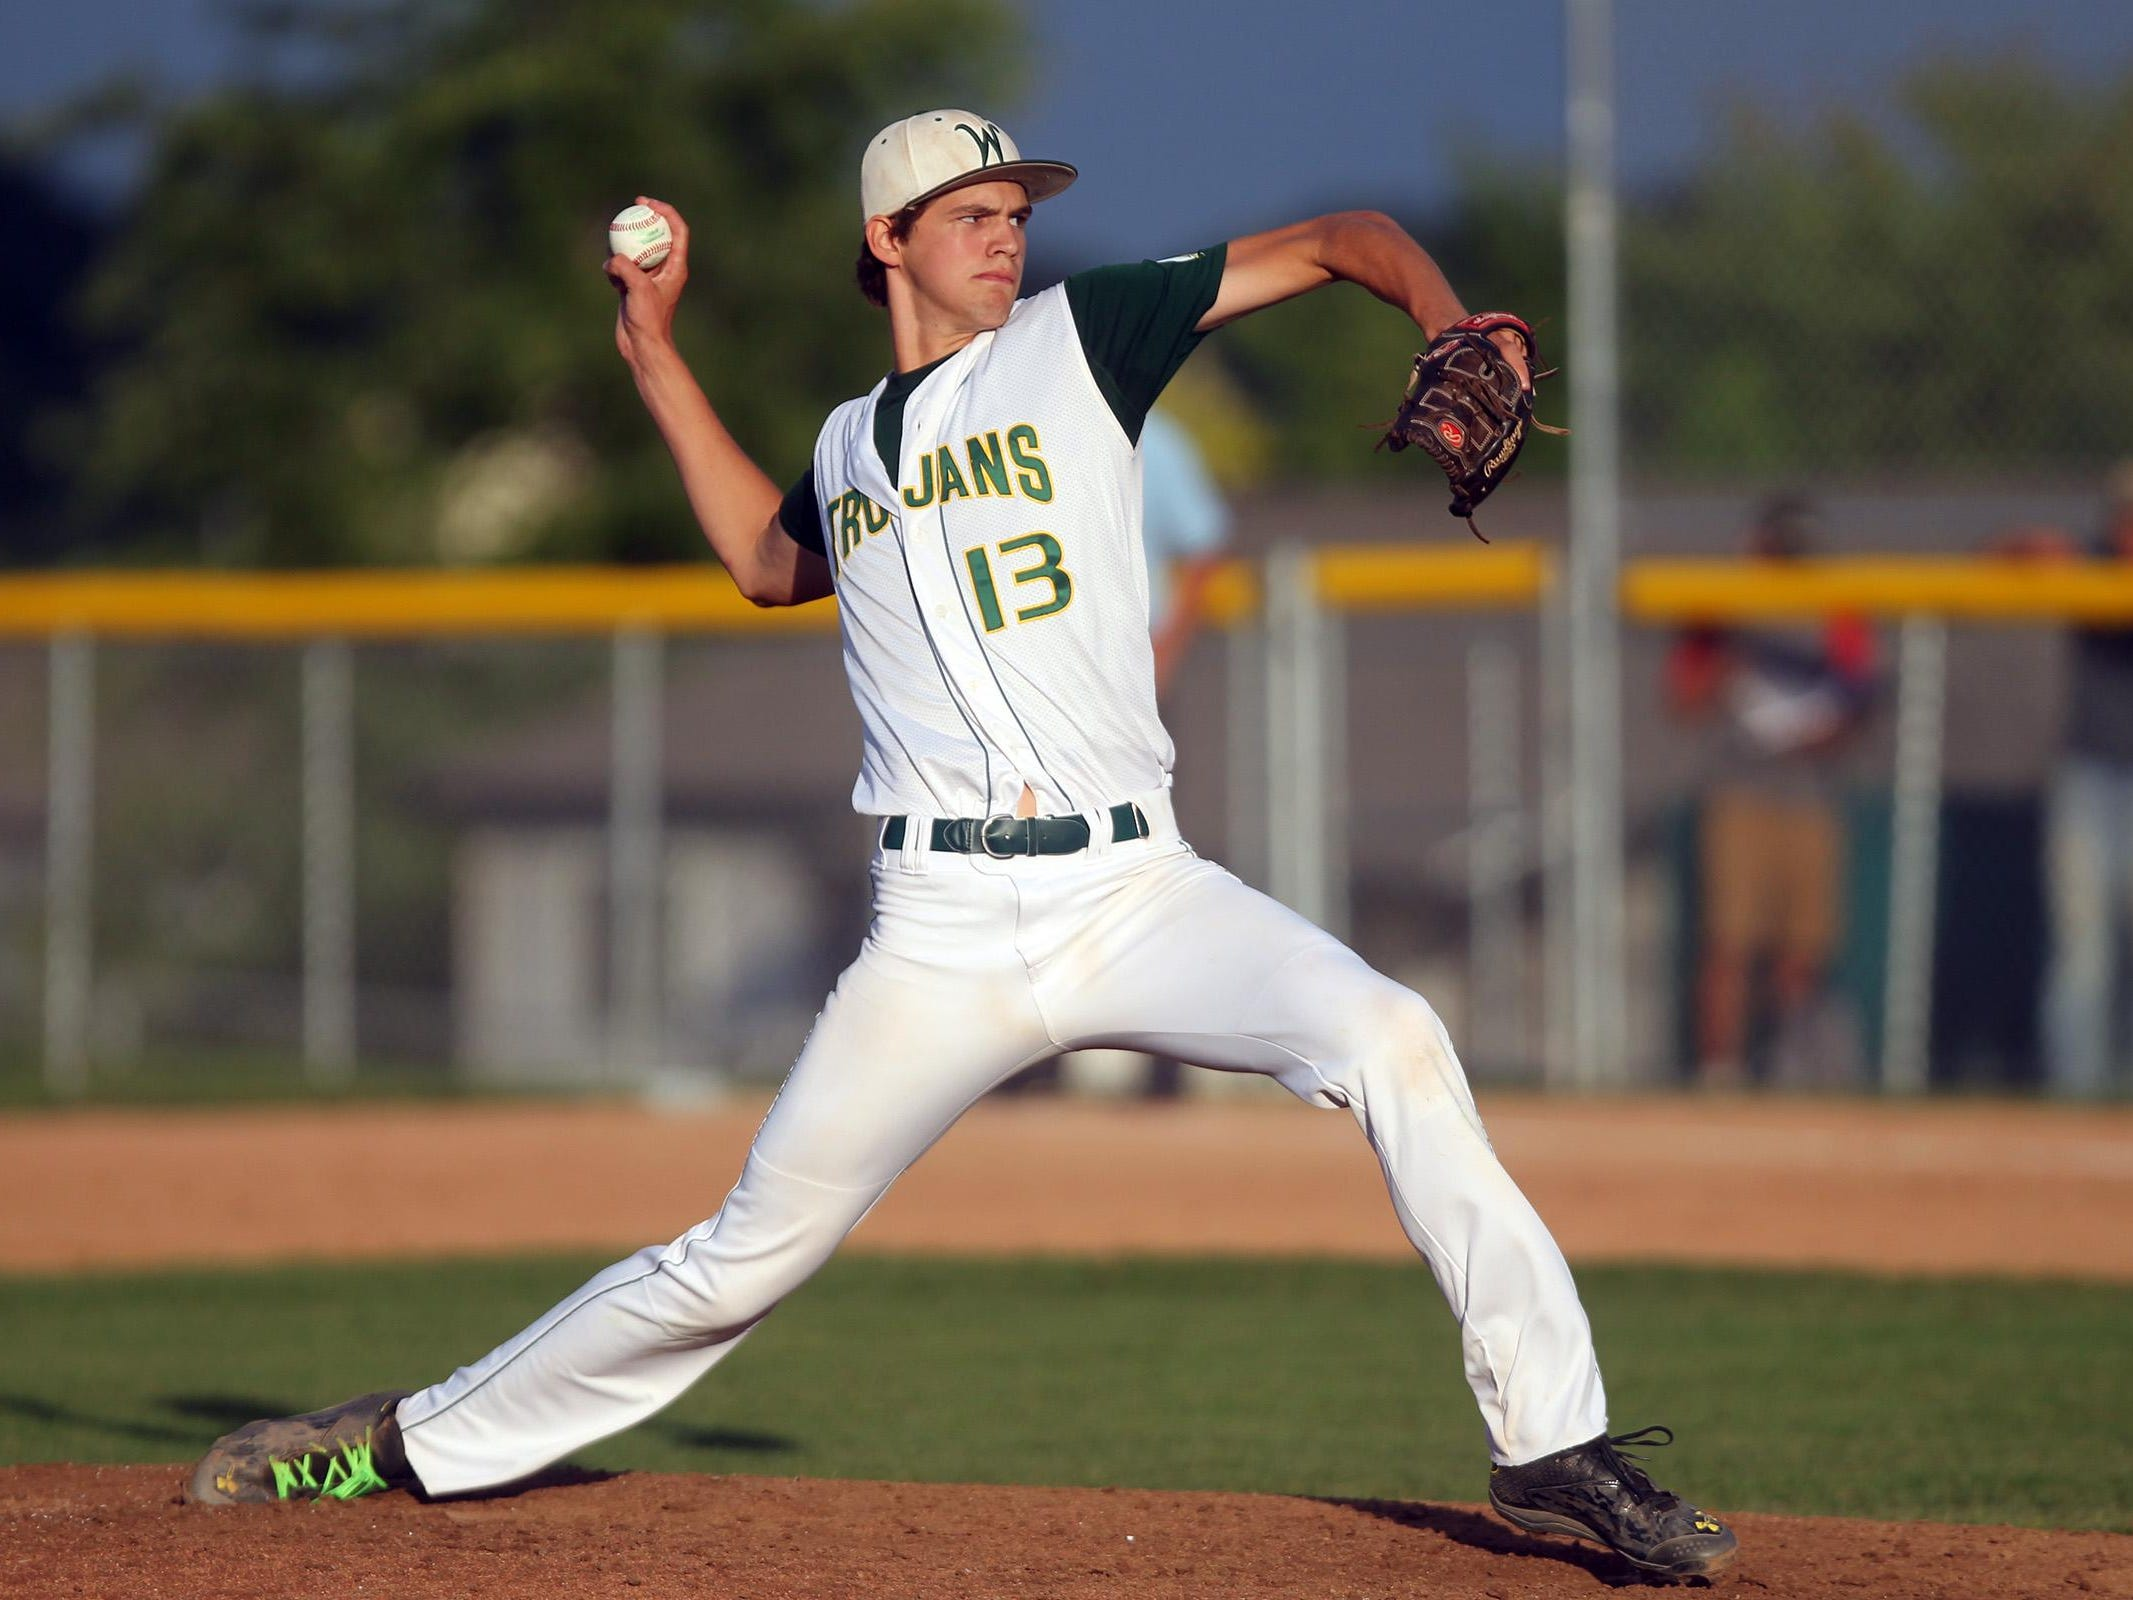 West High's Tanner Lohaus delivers a pitch during Tuesday's game. Lohaus pitched all seven innings, giving up just three hits while earning the win.